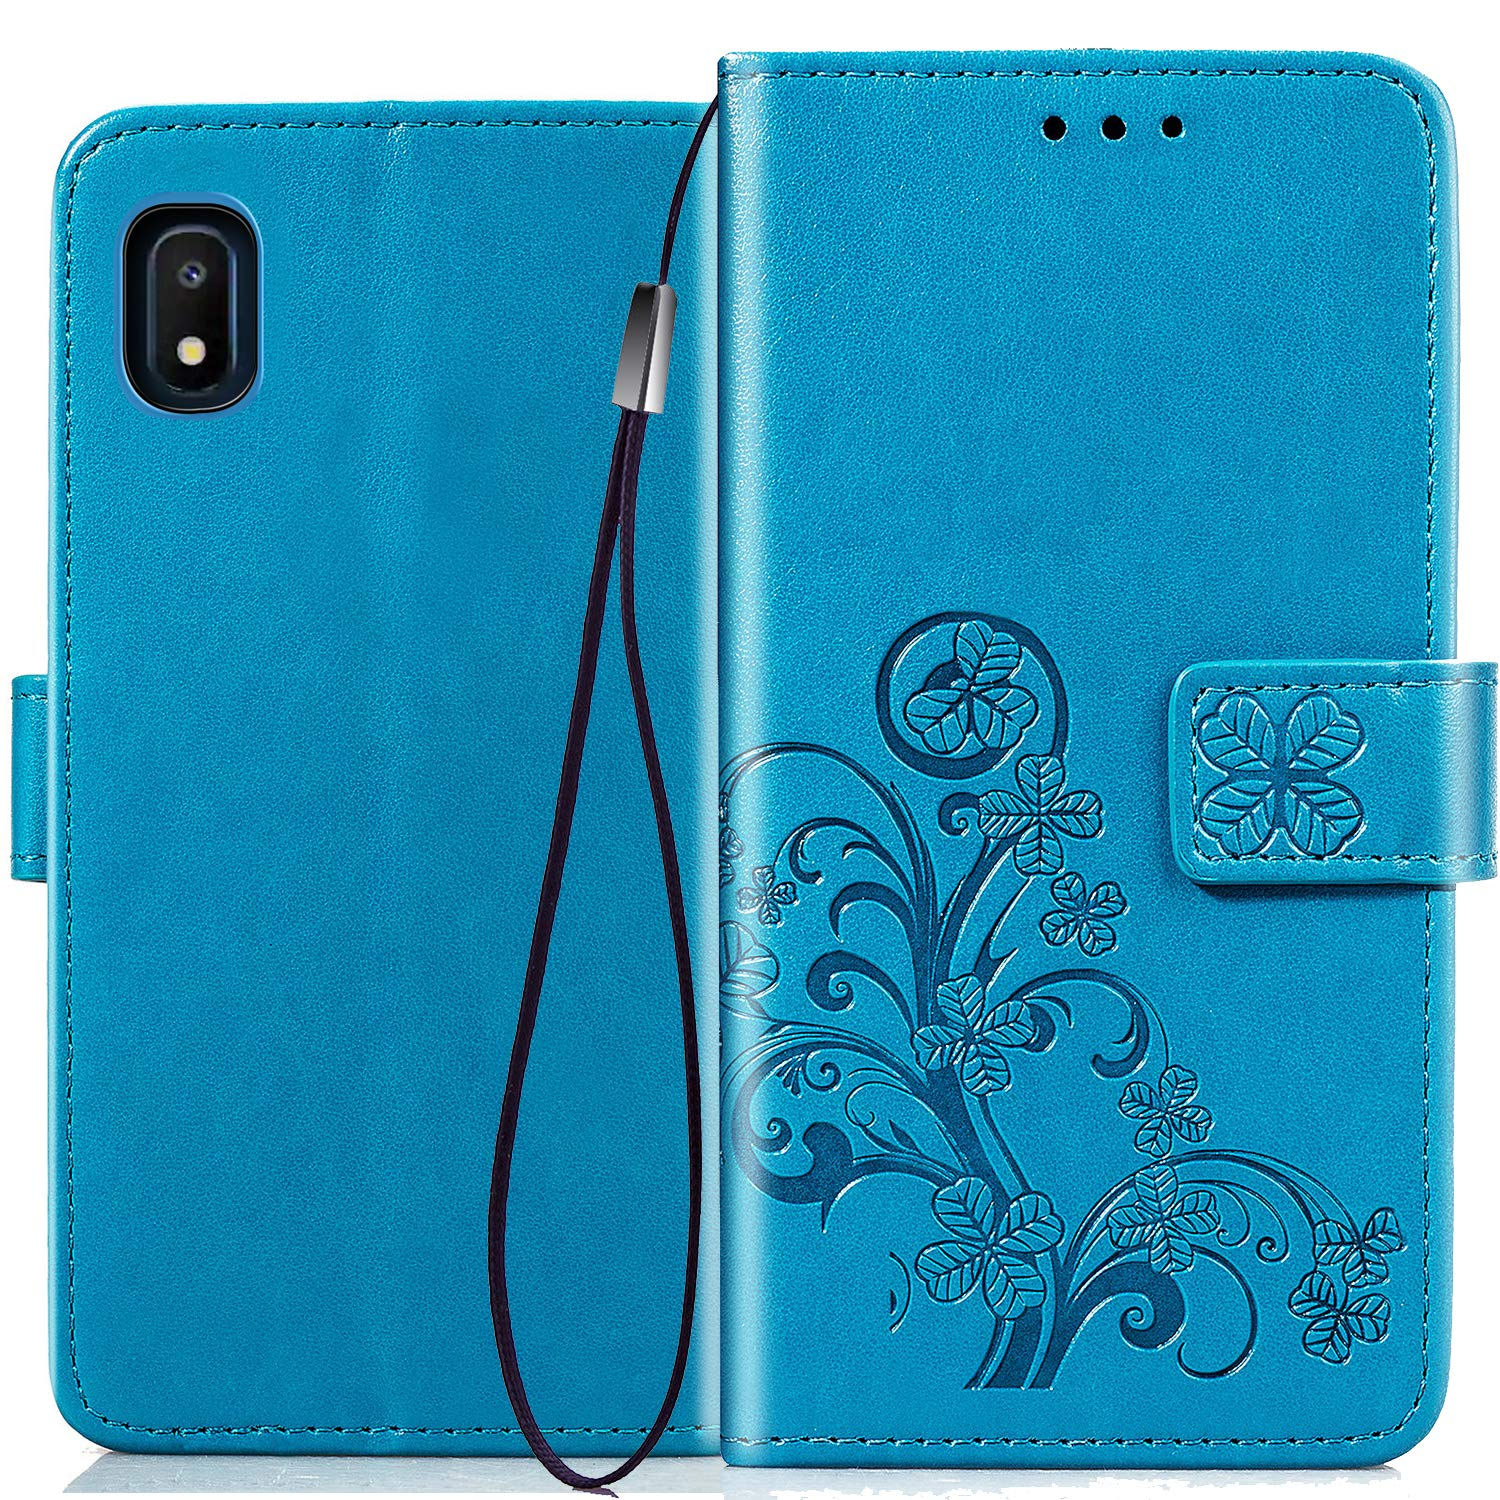 Halnziye Case for Samsung Galaxy A10E, Magnetic Closure Soft TPU Flip Leather Wallet Phone Case with Kickstand Card Slots Designed for Samsung Galaxy A10E Cover (Blue)